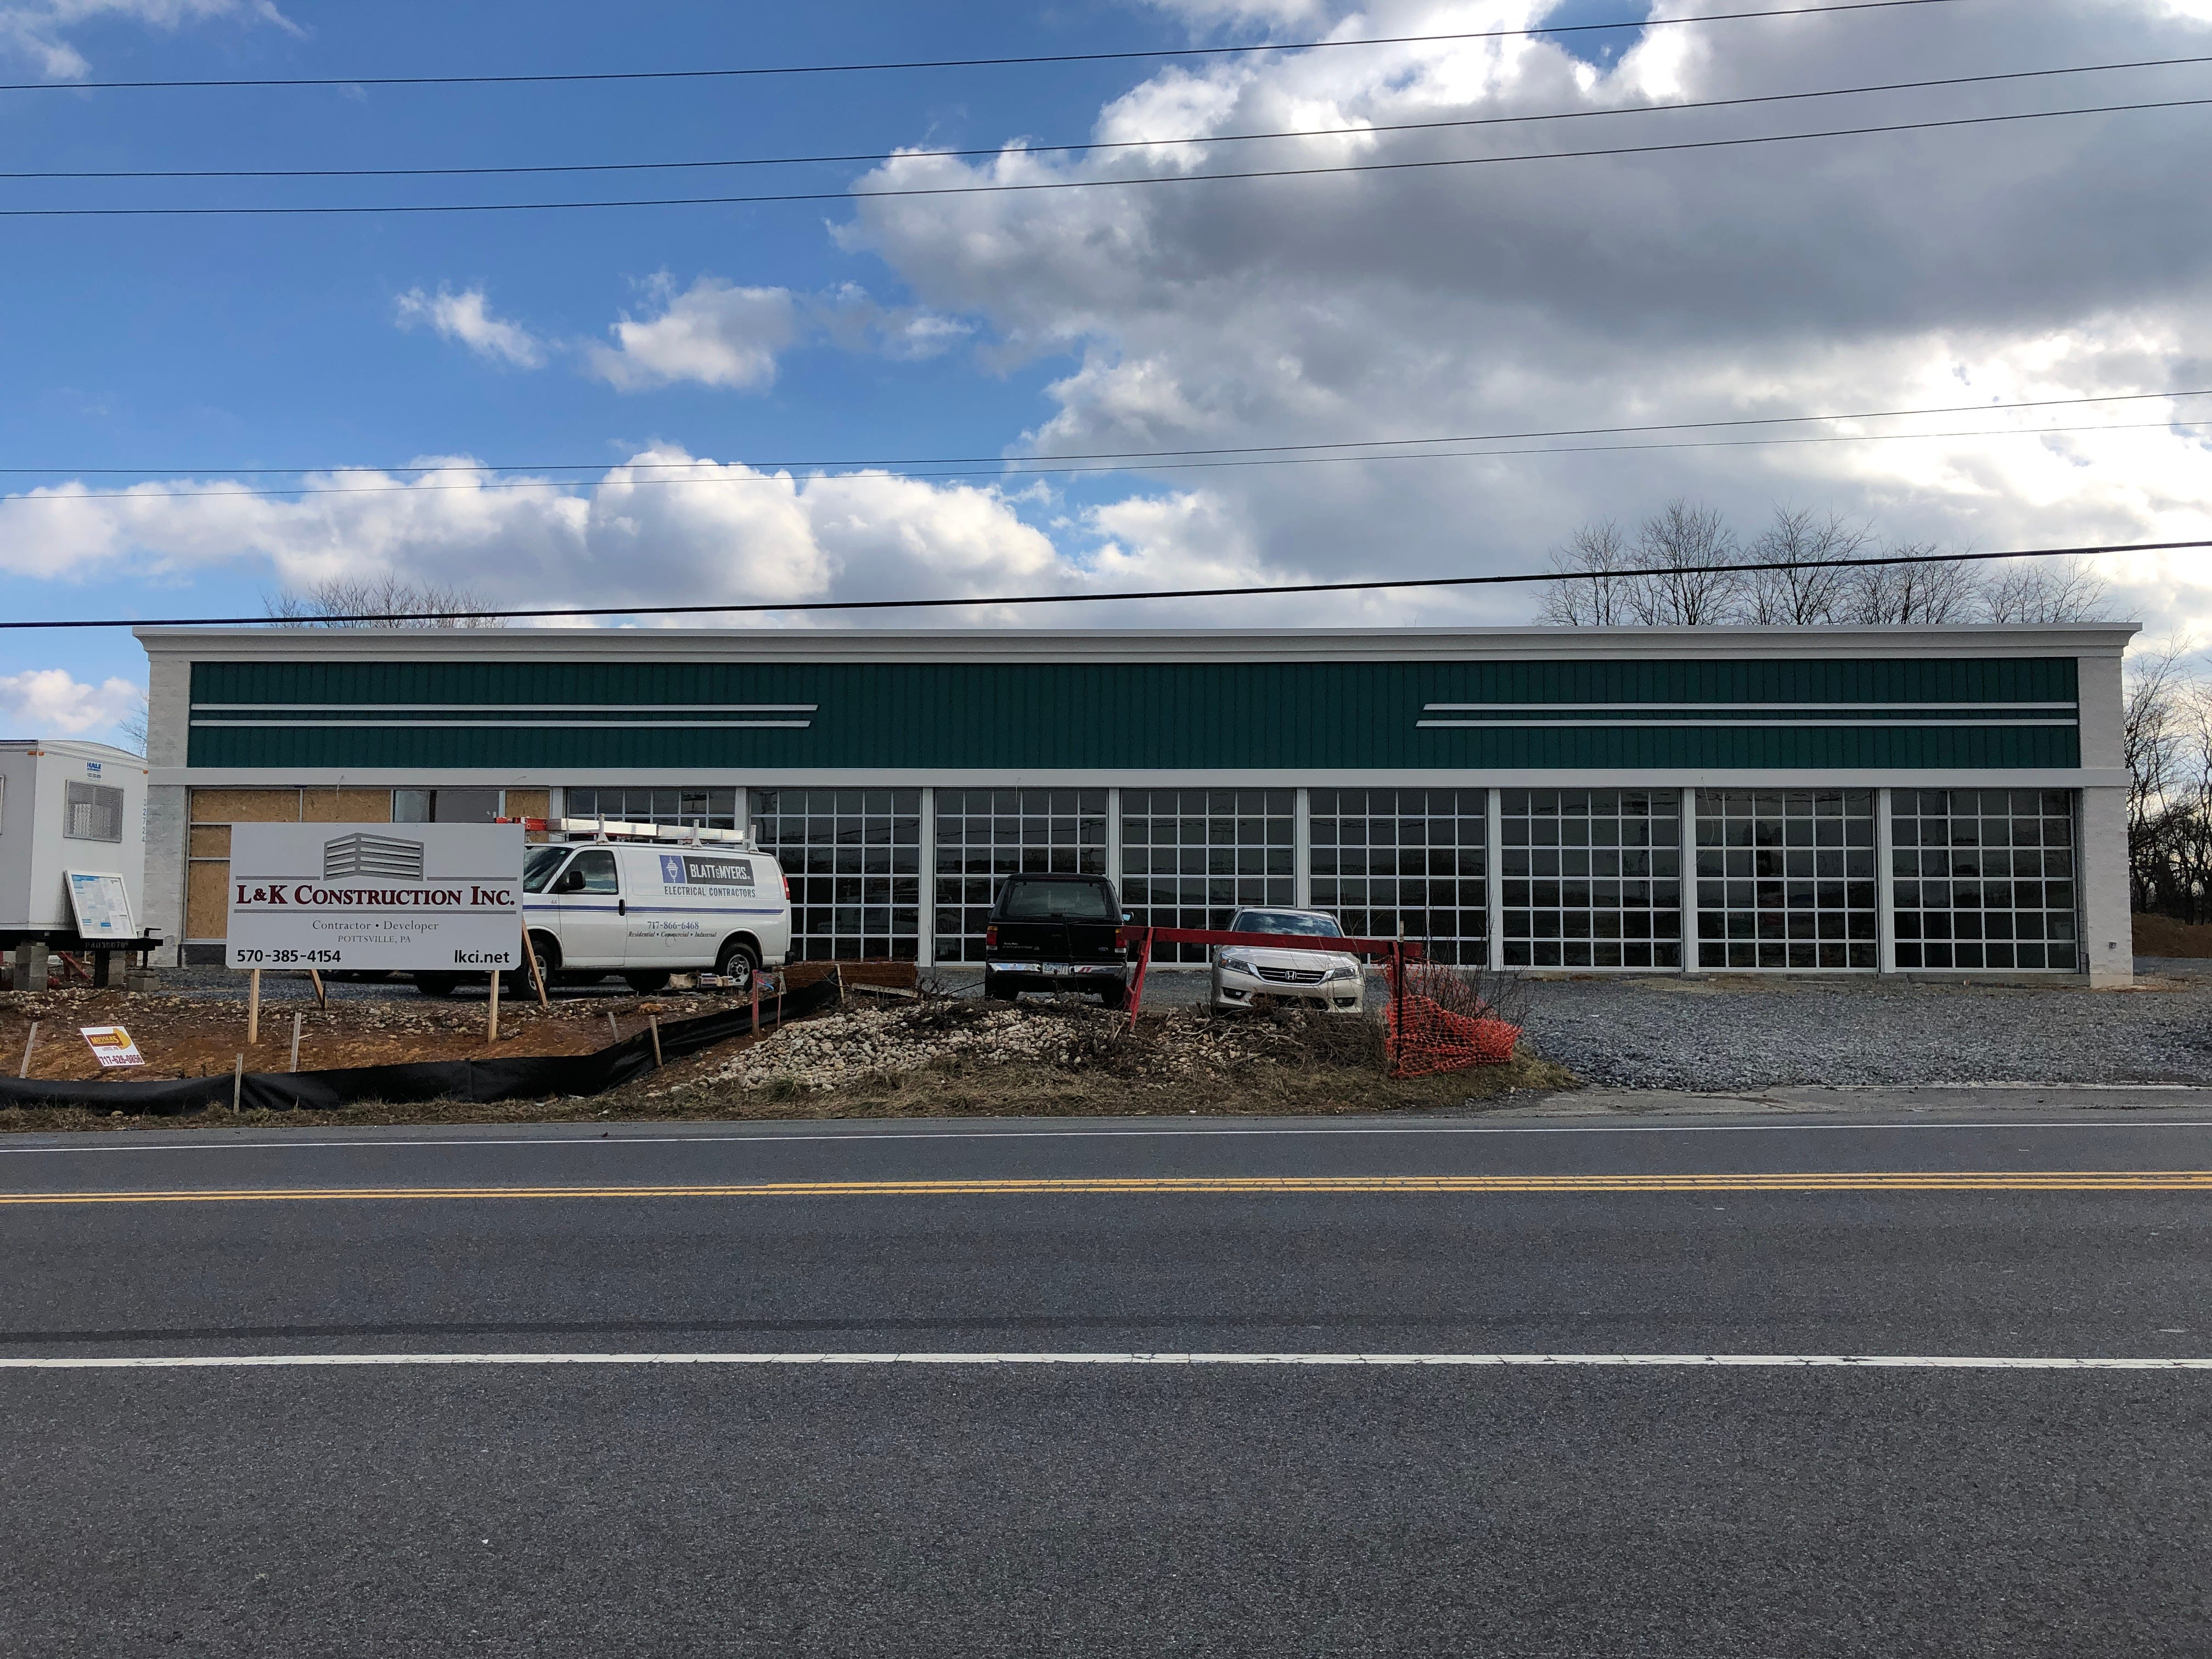 Not one but two Mavis Discount Tire stores are set for Lebanon County in 2019. Pictured is the Quentin Road location, which replaces the abandoned Cheyney Seafood building. Construction on Mavis is also underway in Palmyra. No word yet on when the automotive chain will open either facility.